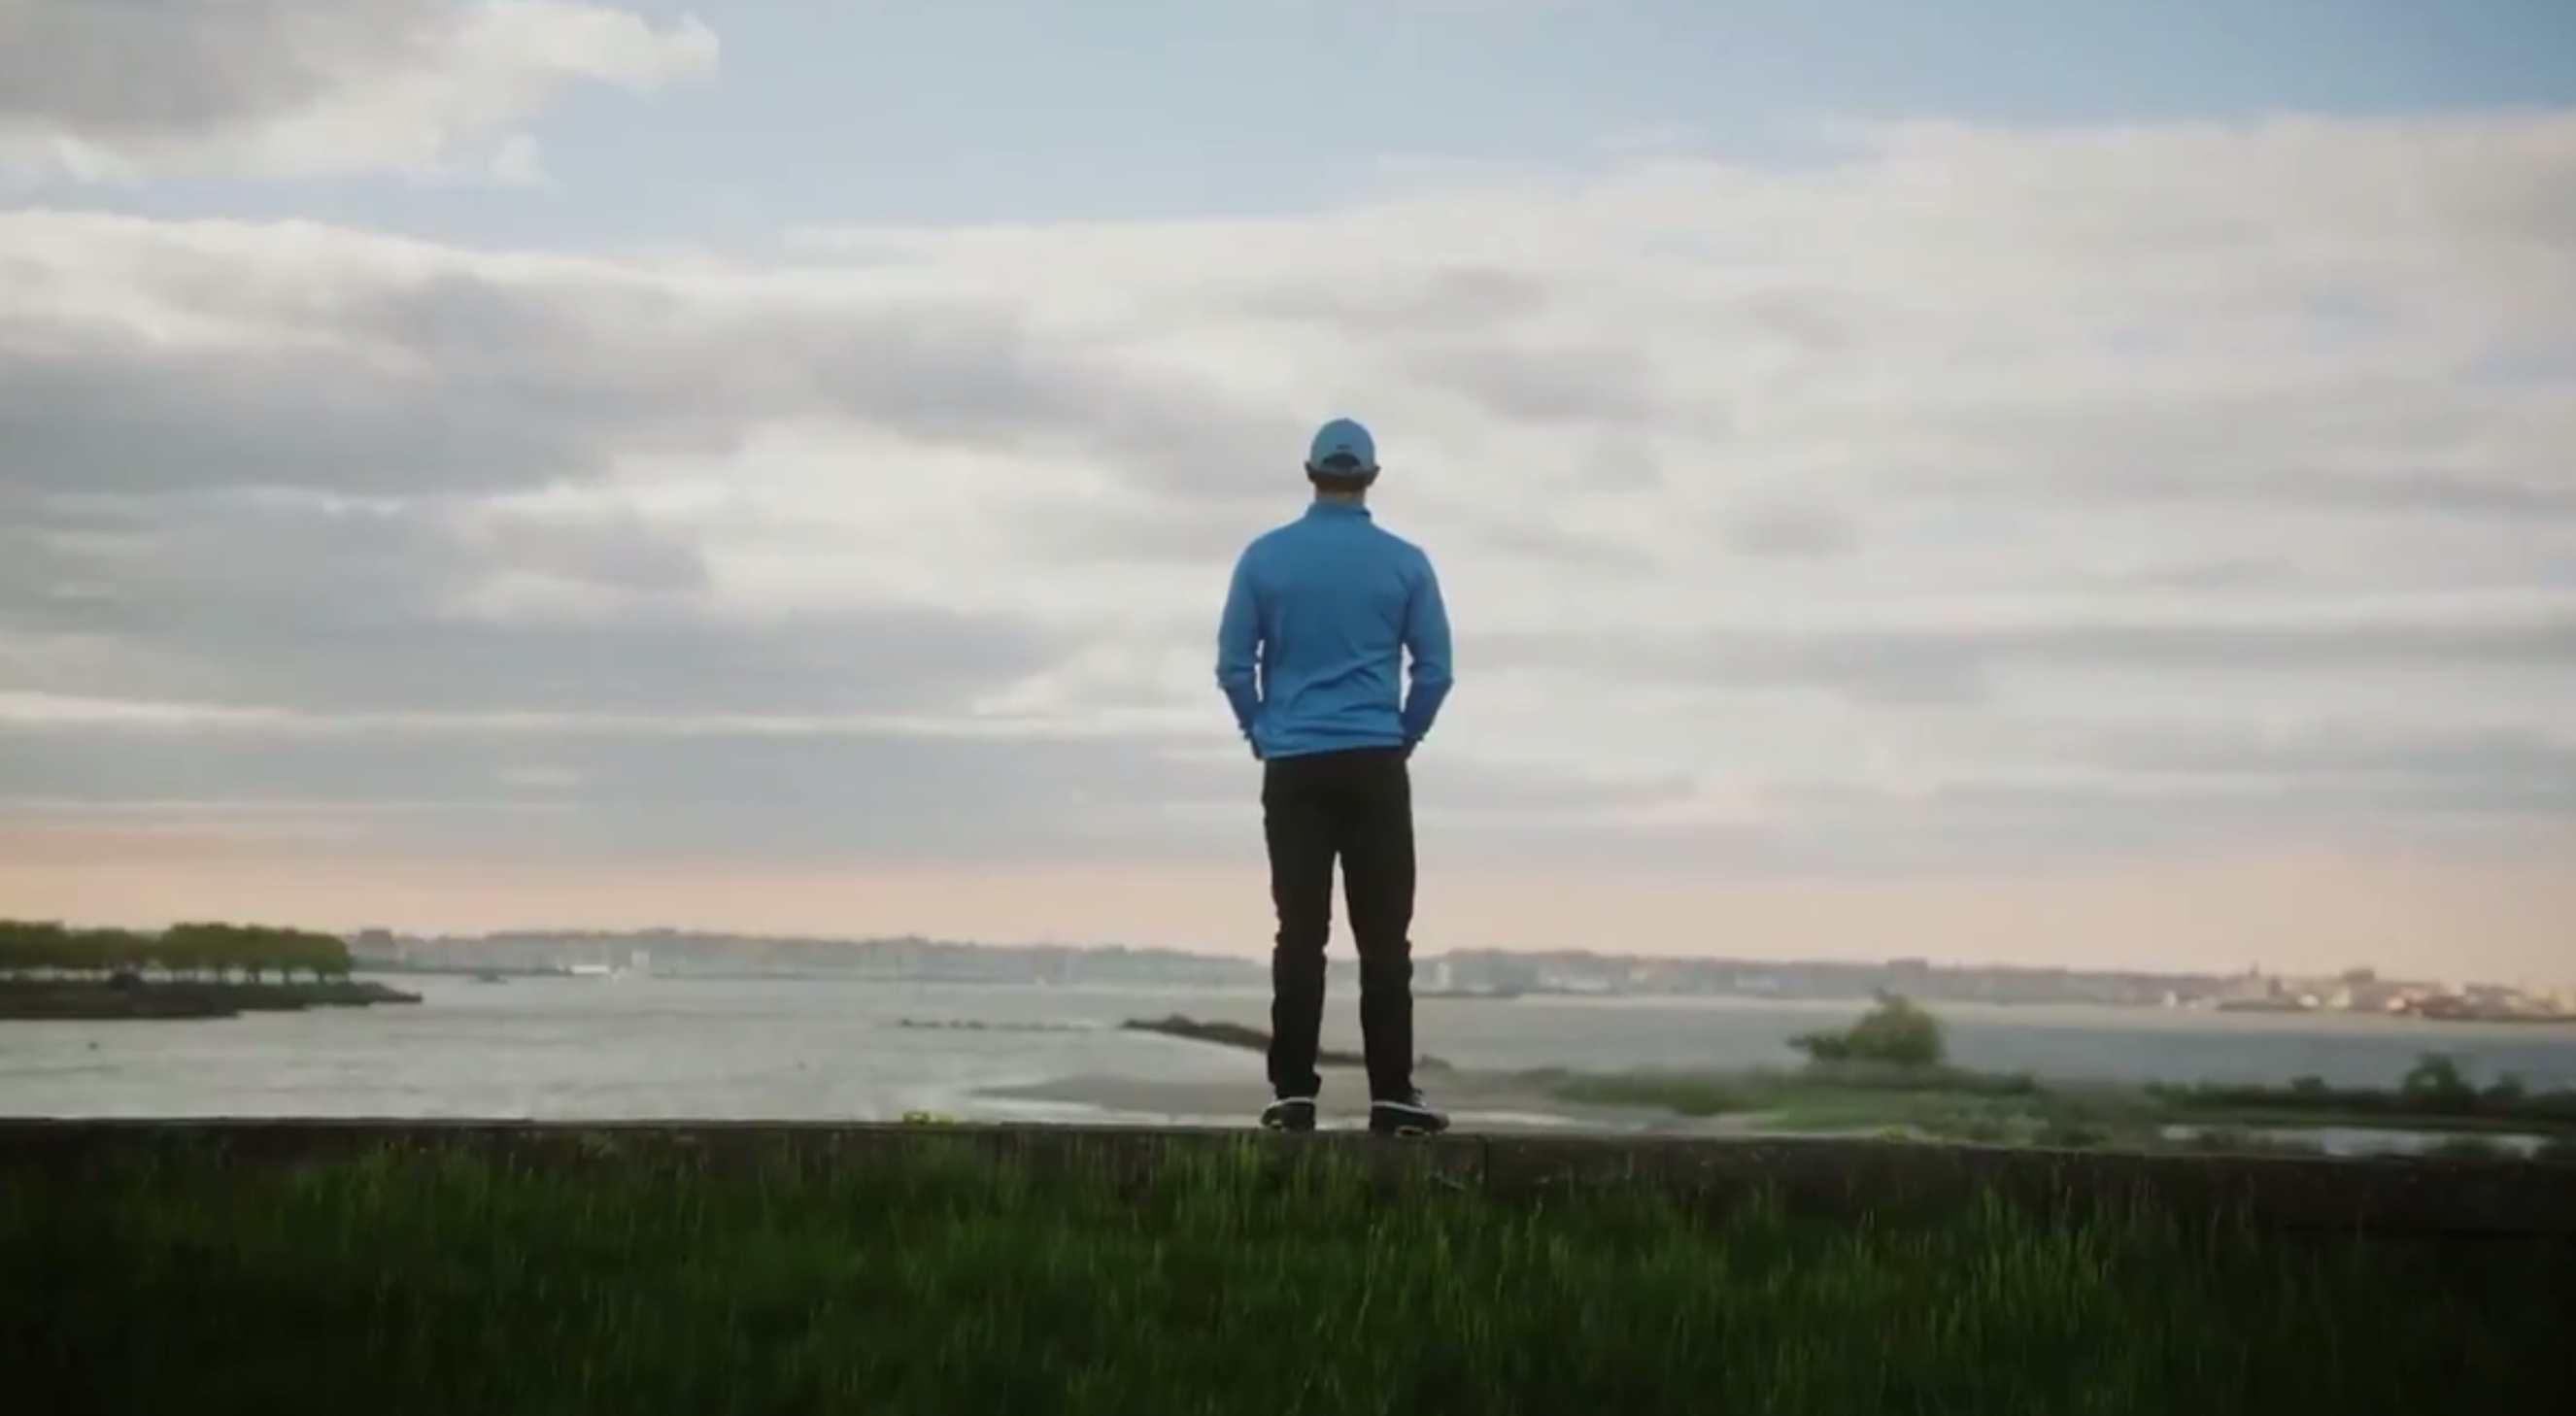 McIlroy: The Shackles of Maturity